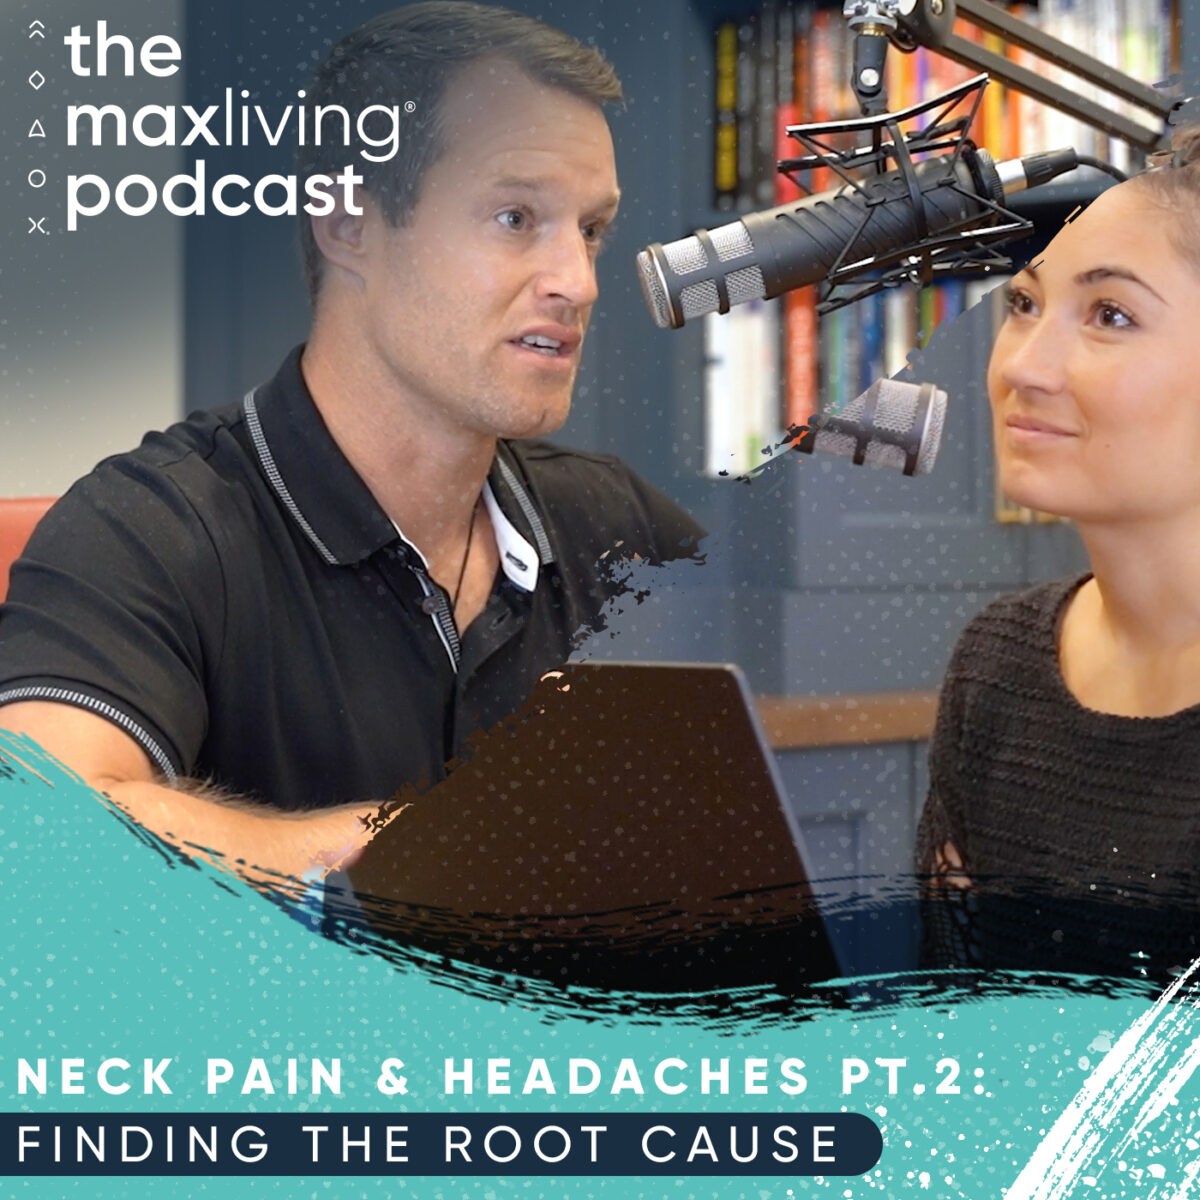 Neck Pain and Headaches Finding the Root Cause Part 2